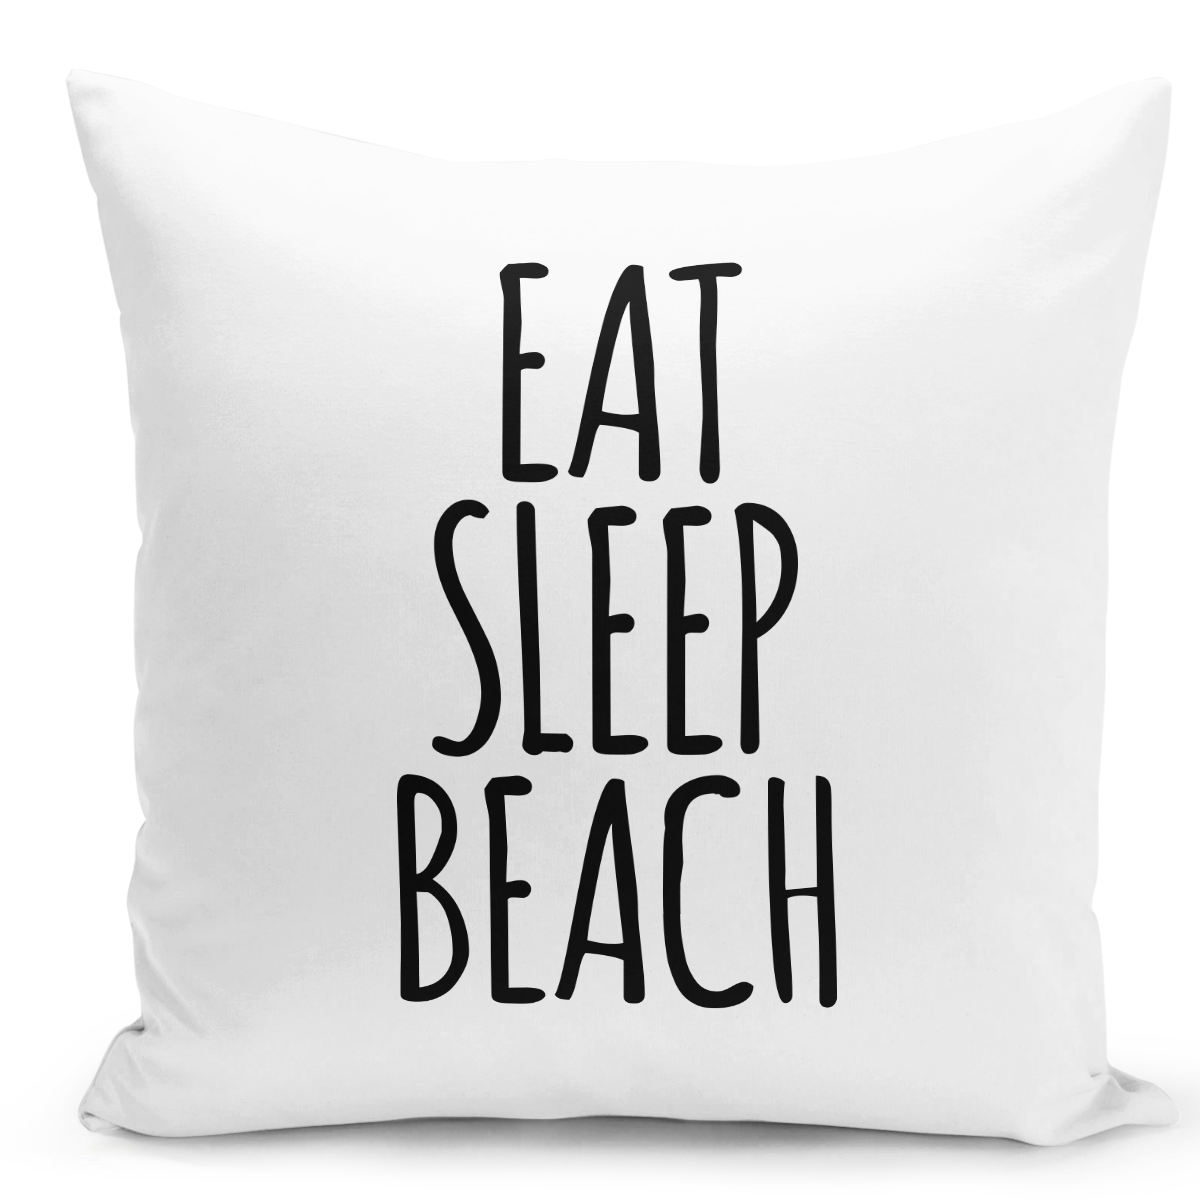 White-Throw-Pillow-Eat-Sleep-Beach-Pillow-Vacation-Home-Pilow---Pure-White-Printed-16-x-16-inch-Square-Home-Decor-Couch-Pillow-